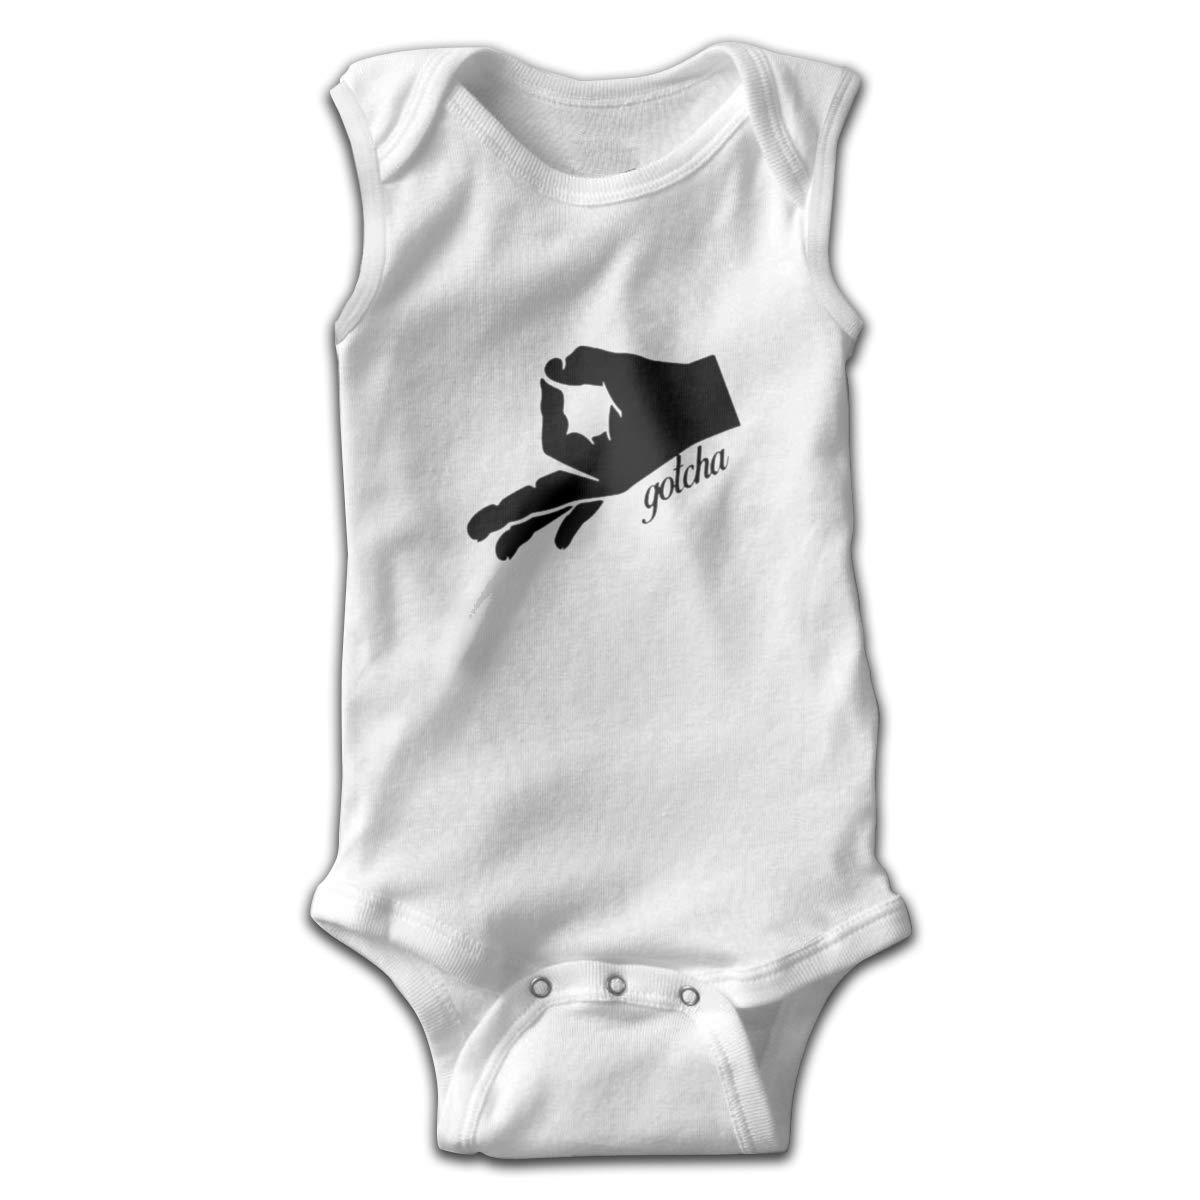 Gotcha Hand Newborn Baby No Sleeve Bodysuit Romper Infant Summer Clothing White